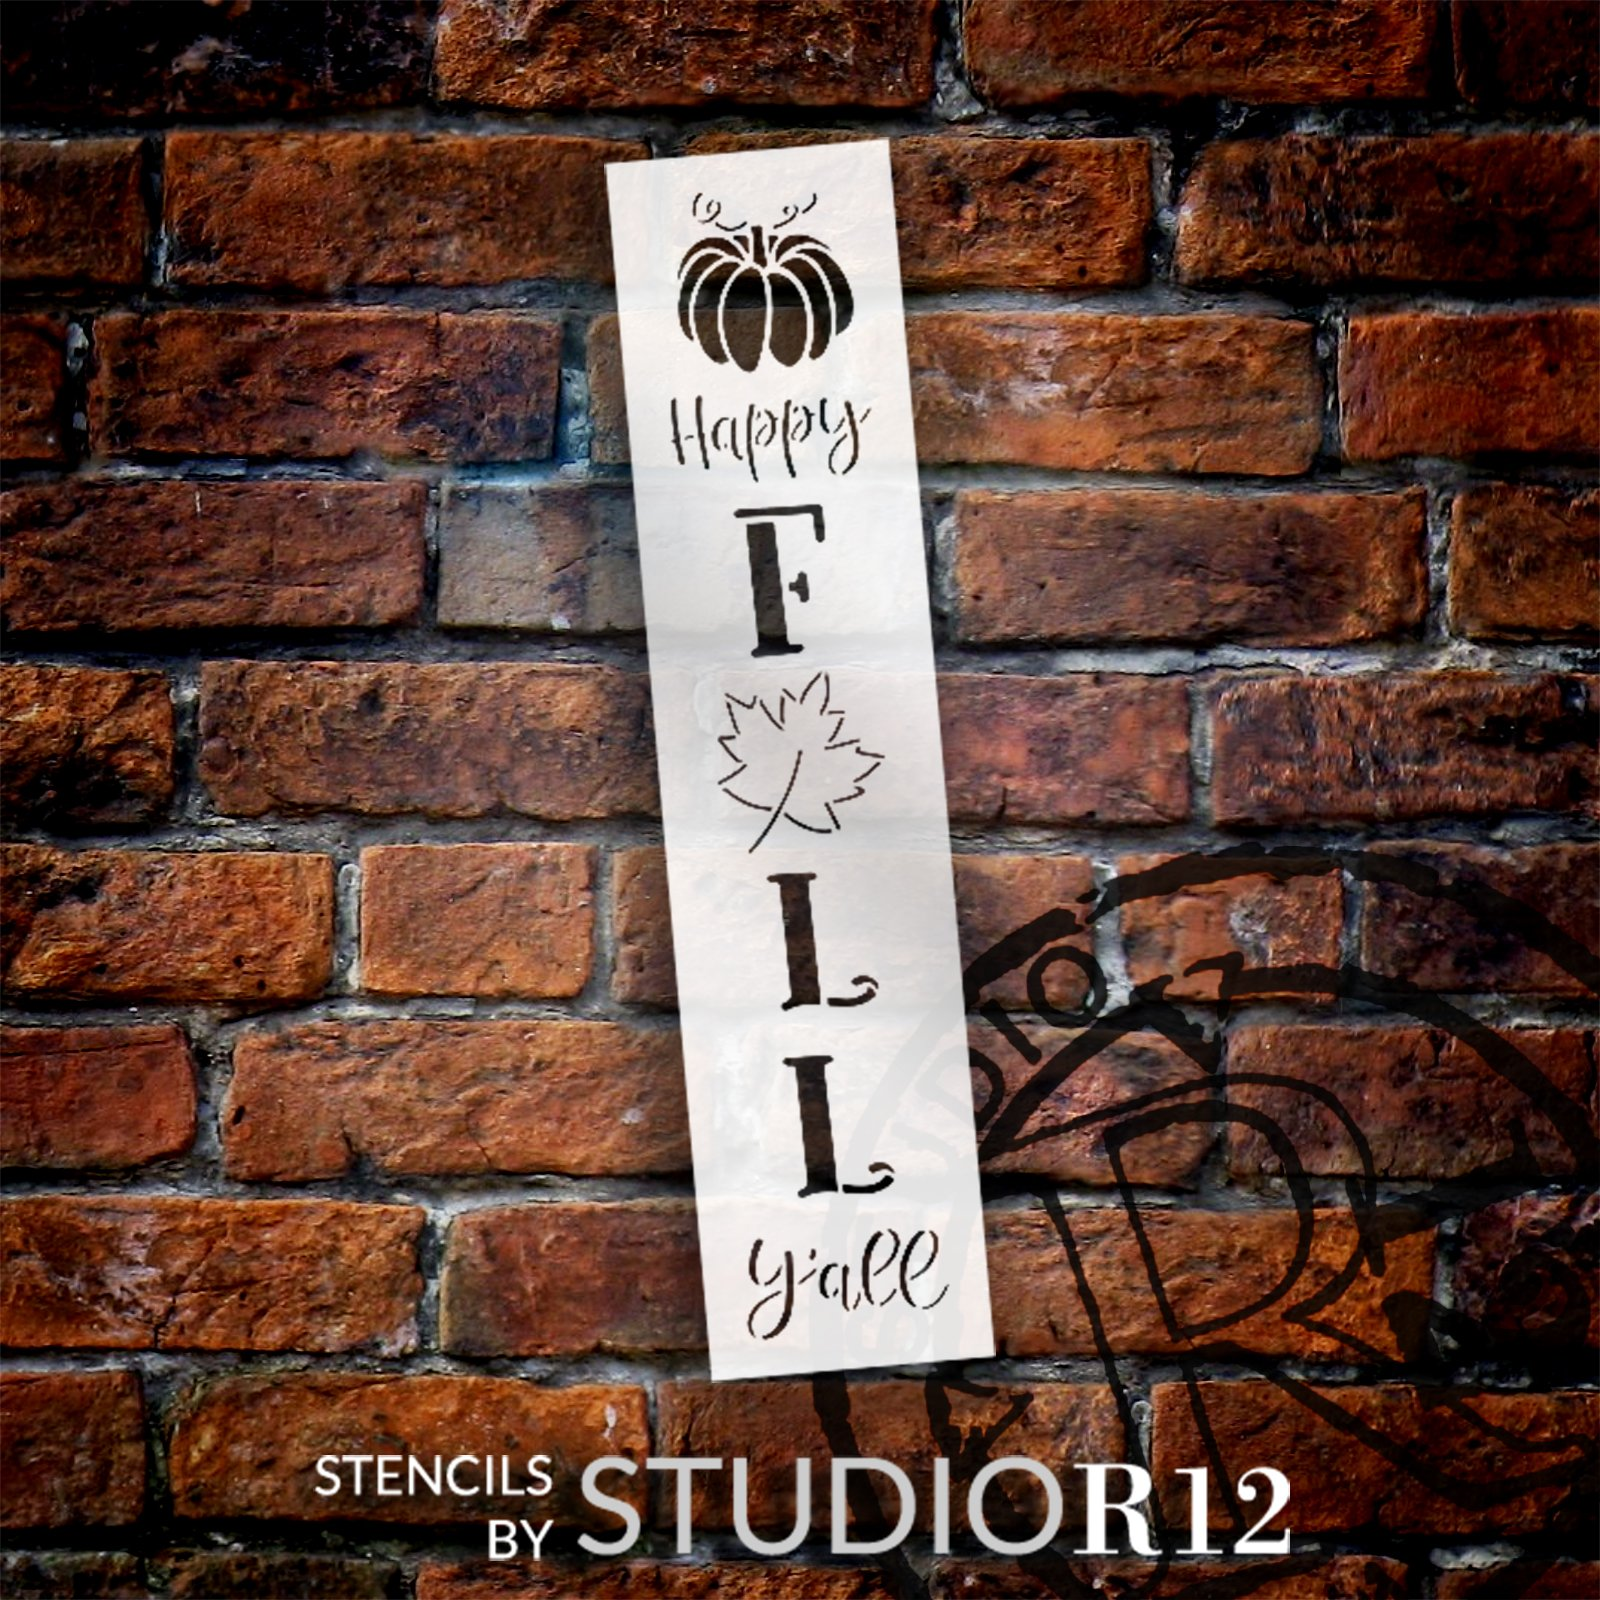 Happy Fall Y'all Stencil by StudioR12   Craft DIY Autumn Leaf Pumpkin Porch Leaner Home Decor   Paint Wood Sign Reusable Mylar Template   Select Size